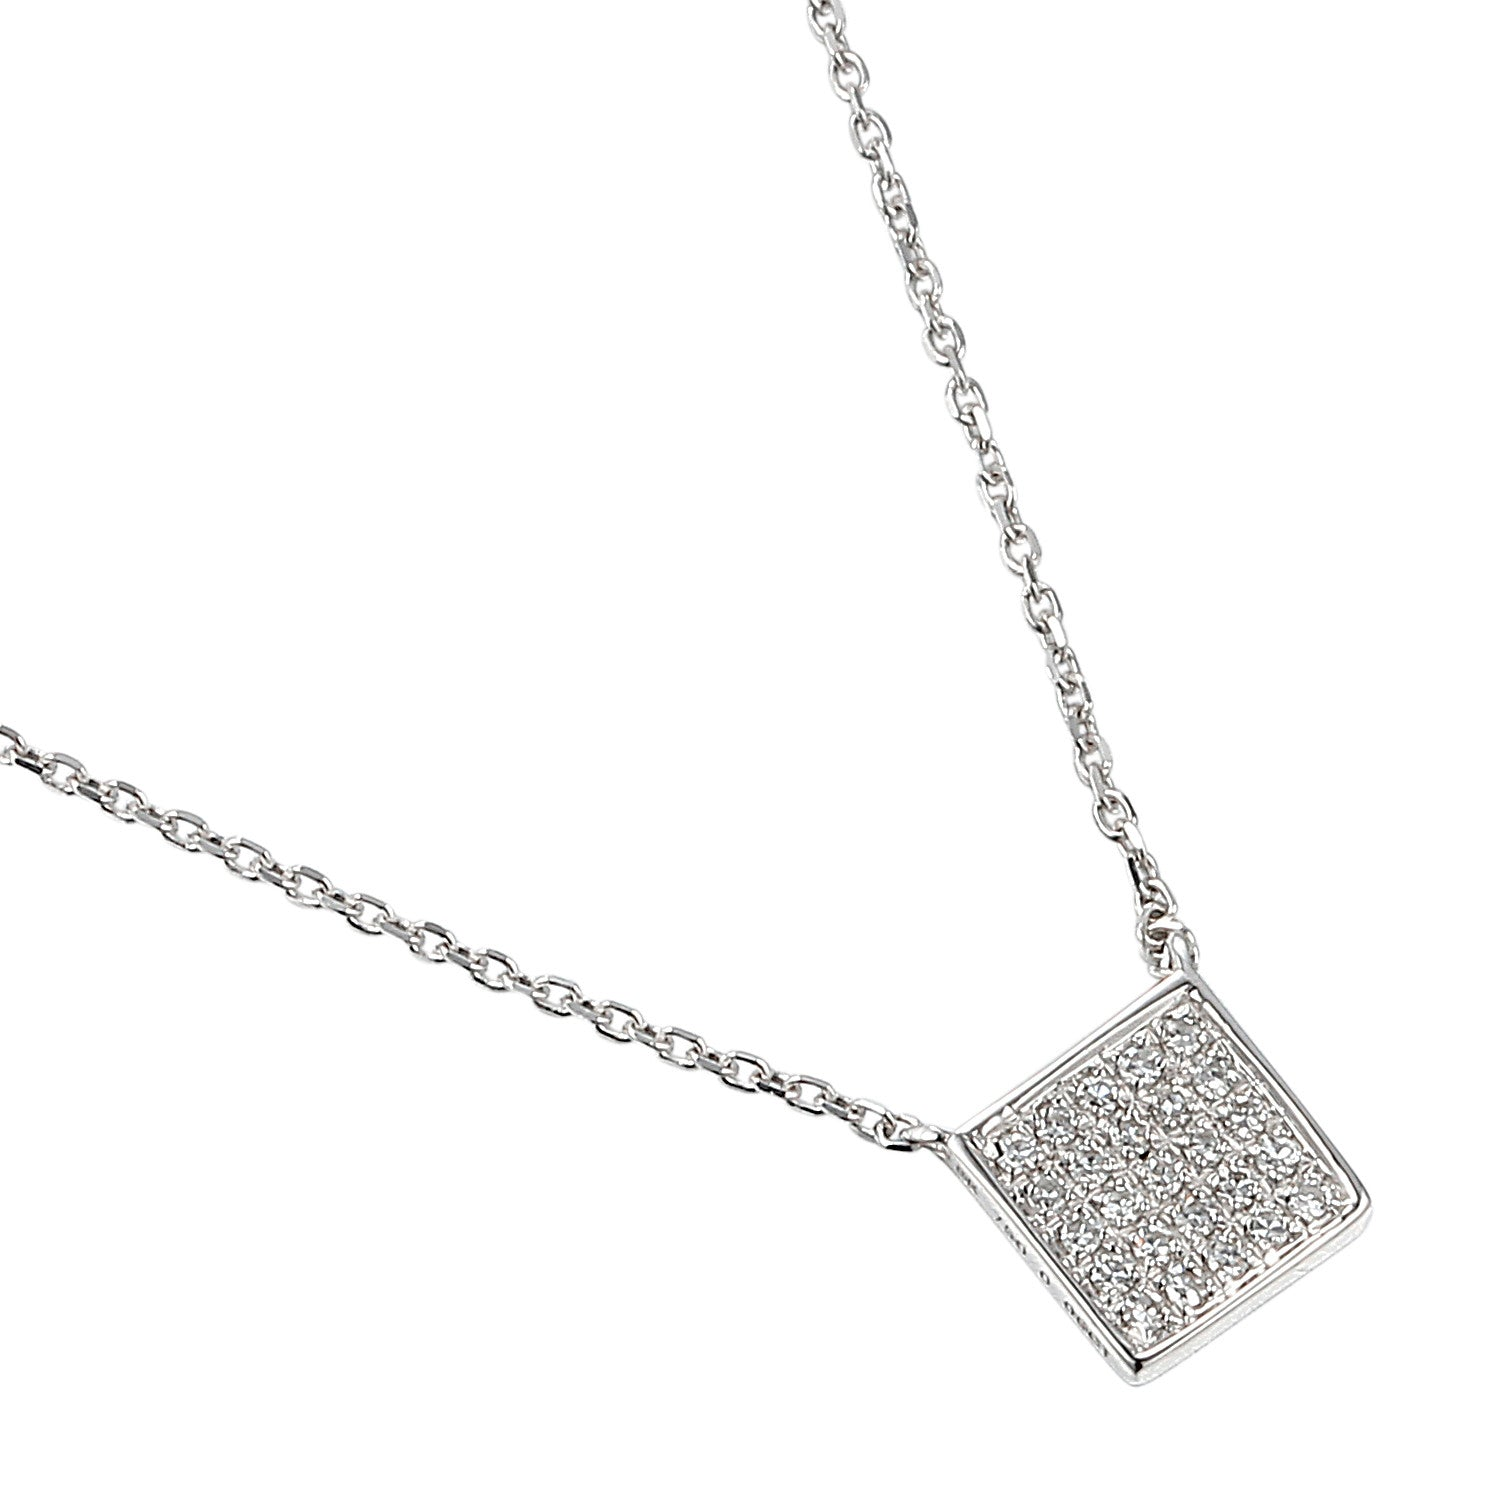 star steel pendant fashion langene product european new girl the temperament square a wholesale stainless with jewelry version diamond personality costume